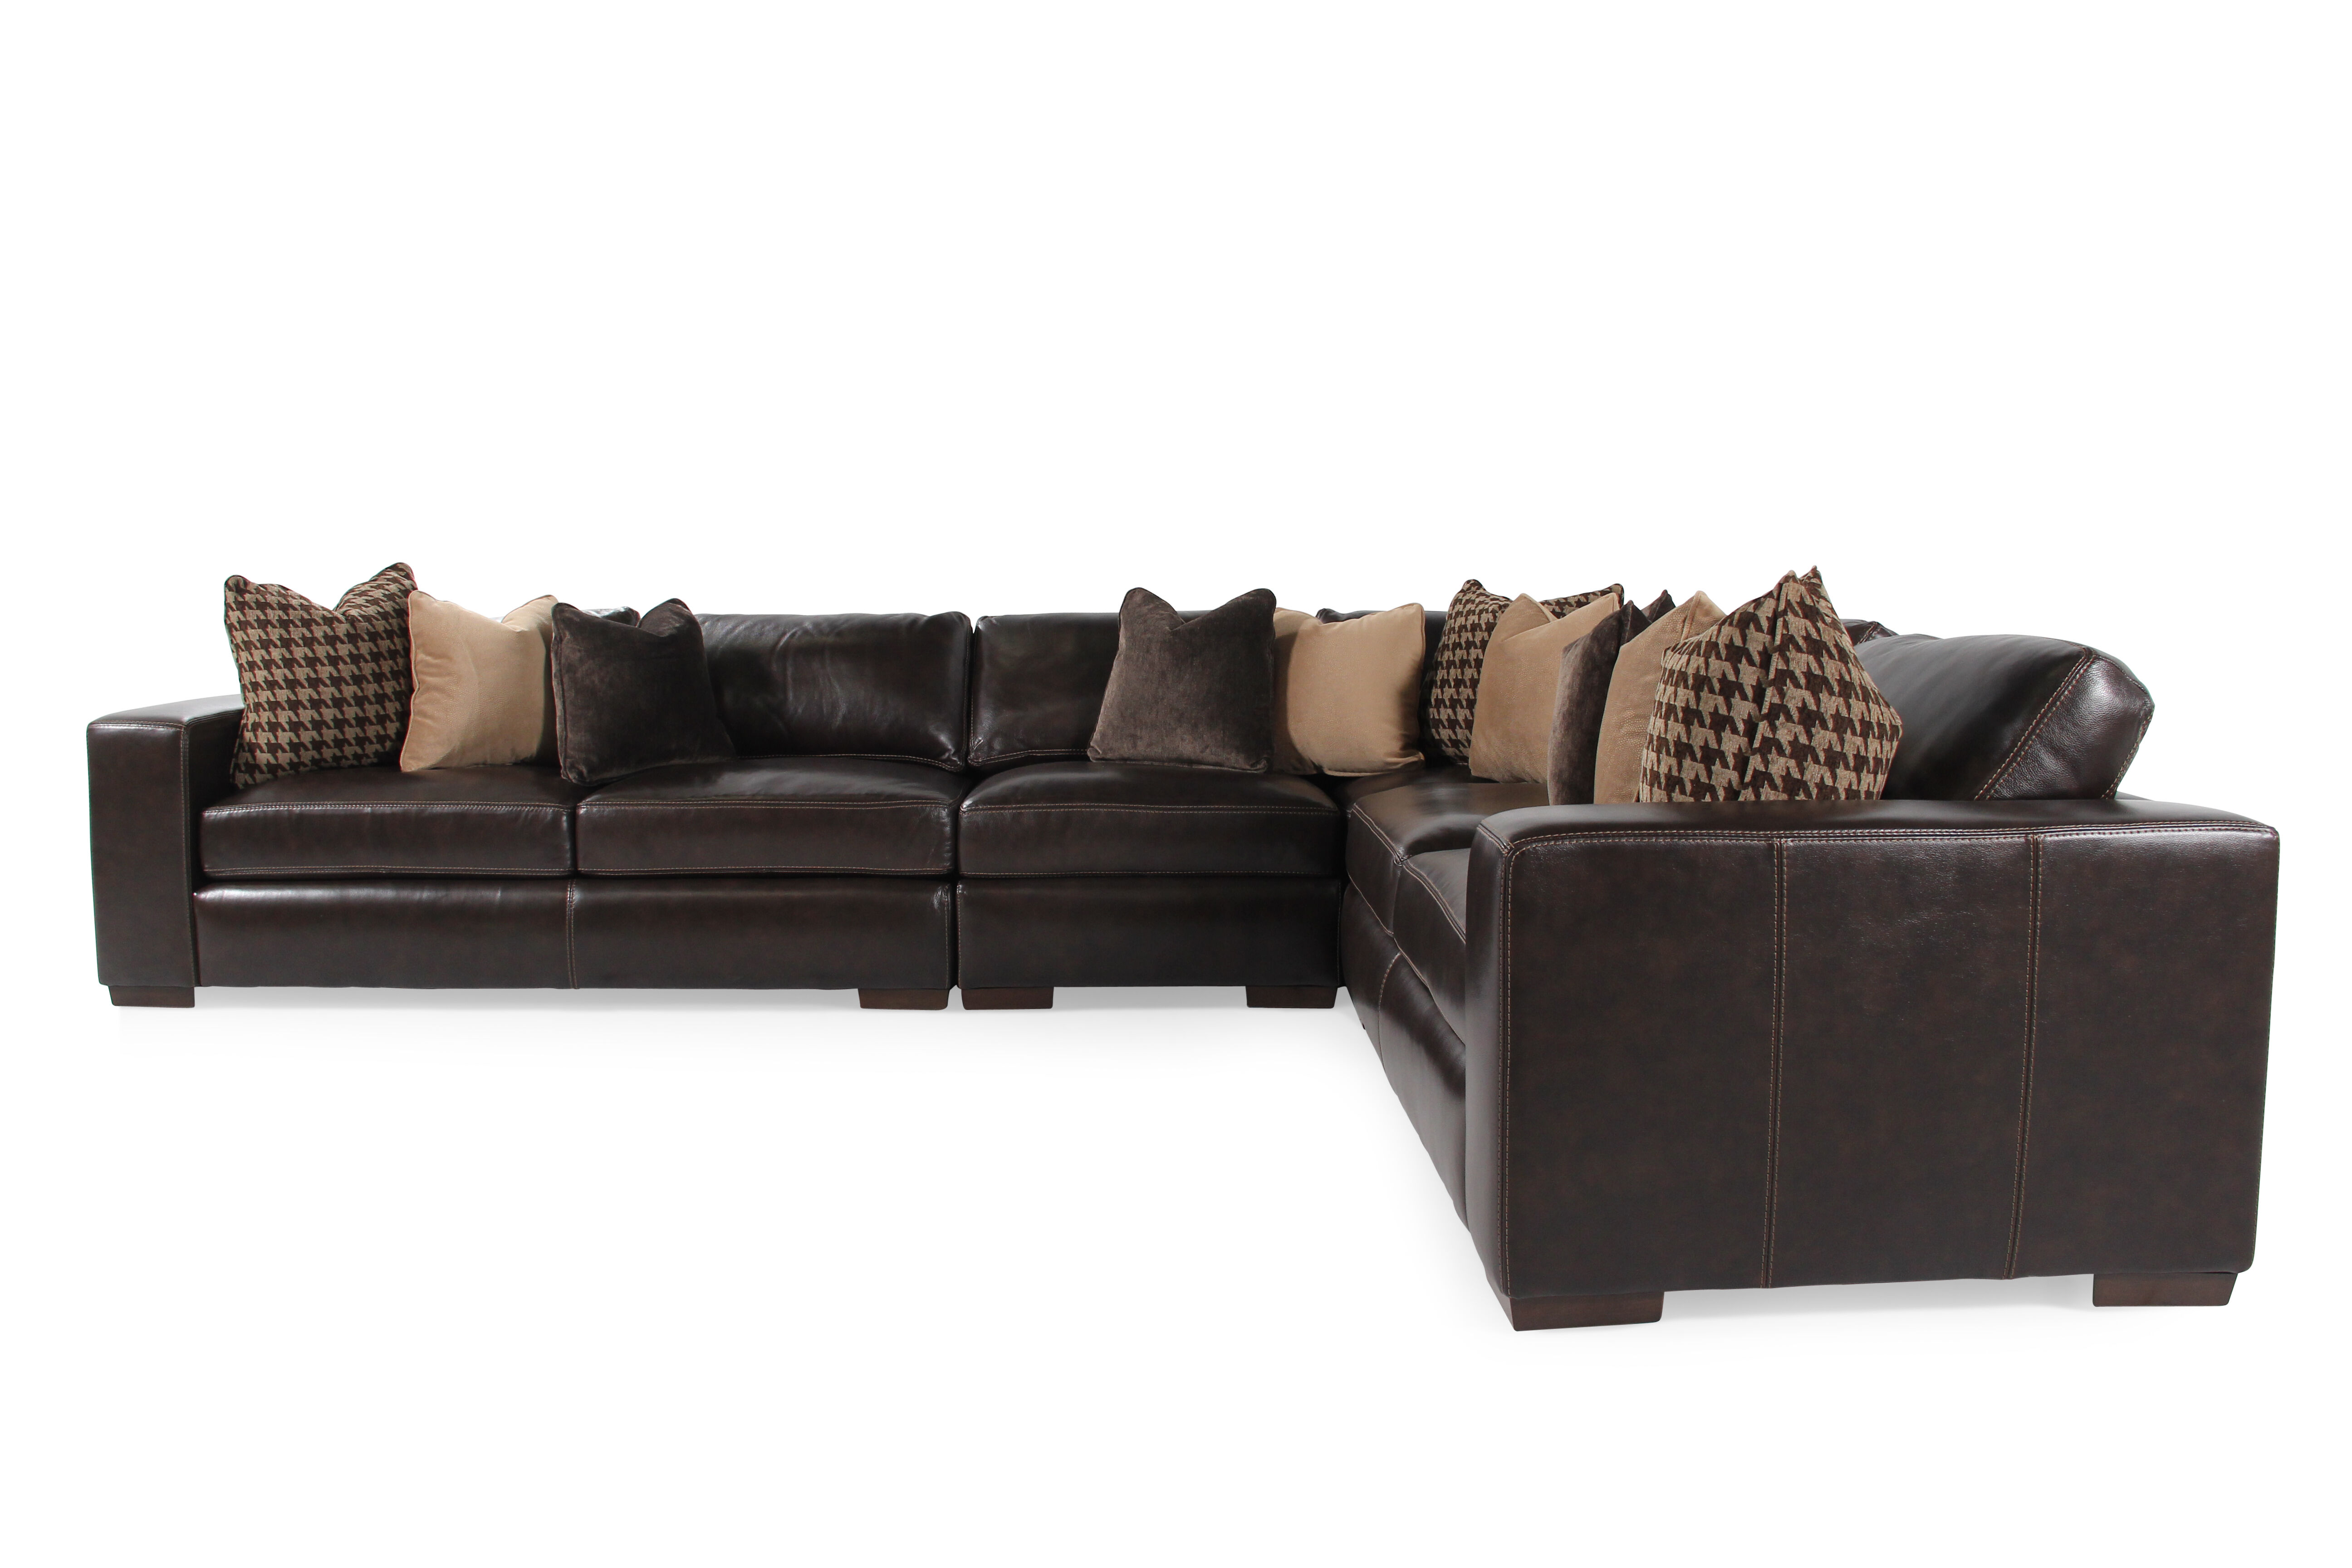 Bernhardt Dorian Leather Sectional  sc 1 st  Mathis Brothers : bernhardt leather sectional - Sectionals, Sofas & Couches